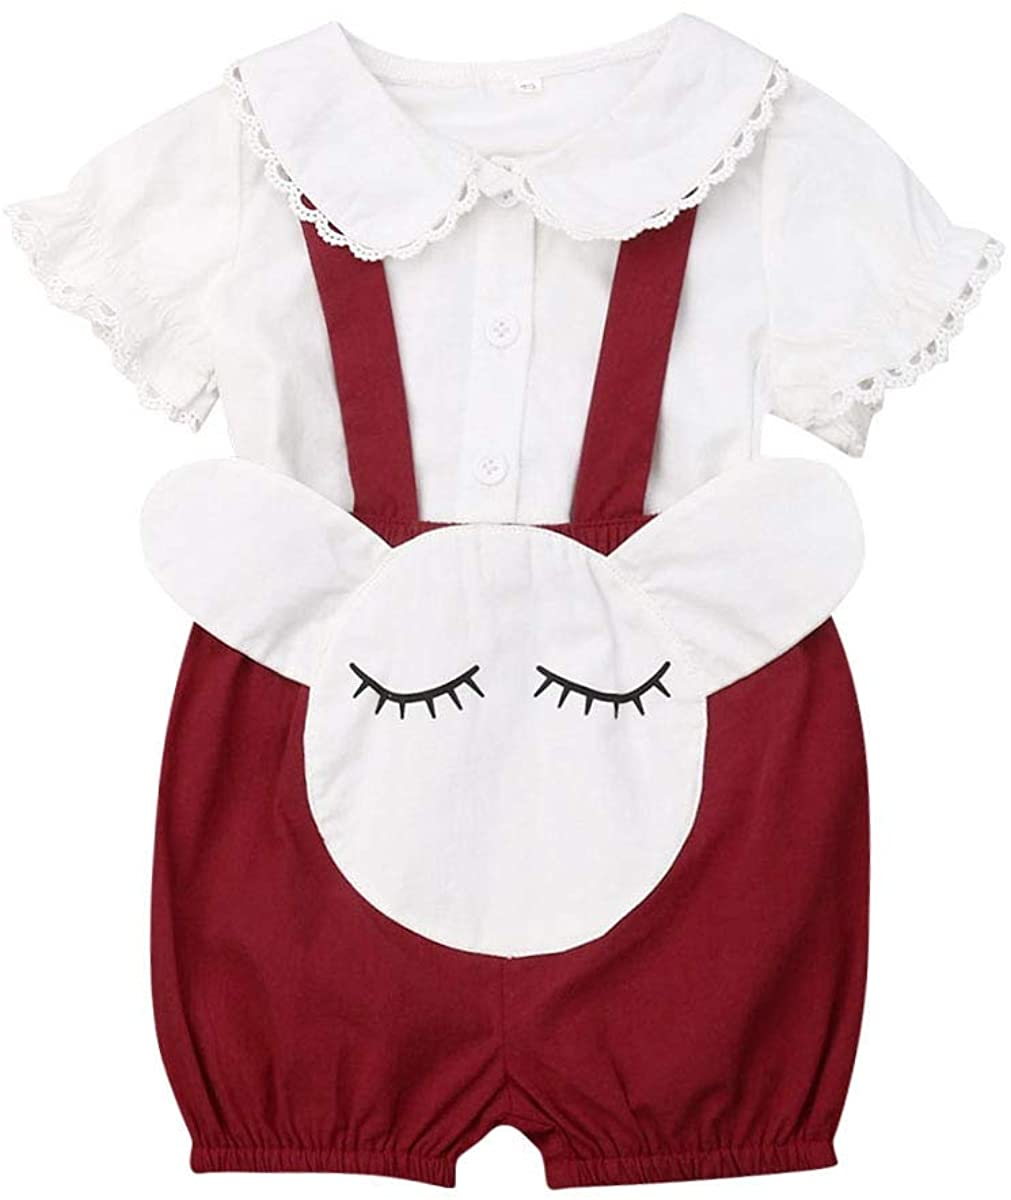 Toddler Baby Girls 2 Pcs Outfit Sets White Lace Ruffle Button Down Shirt+Wine red Cartoon Printed Suspender Shorts 0-18M